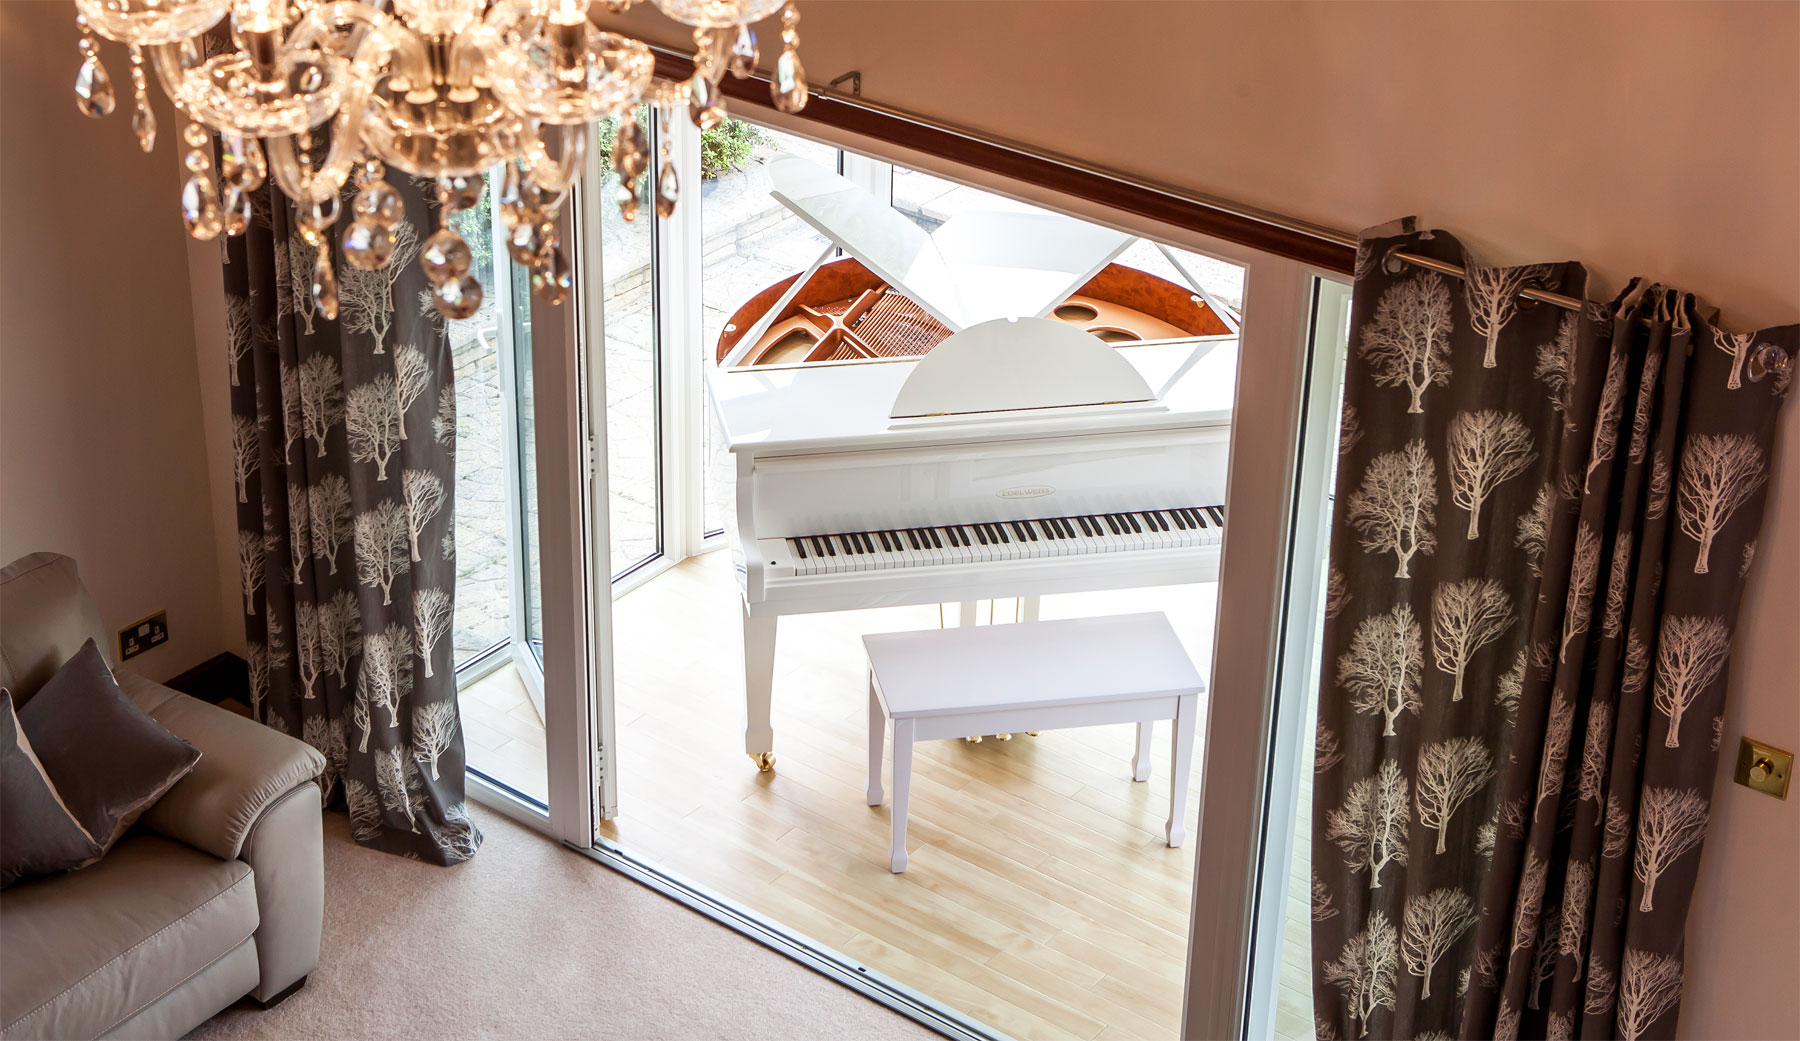 Edelweiss Lets You Tinkle With The Look Of Their Self-Playing Pianos